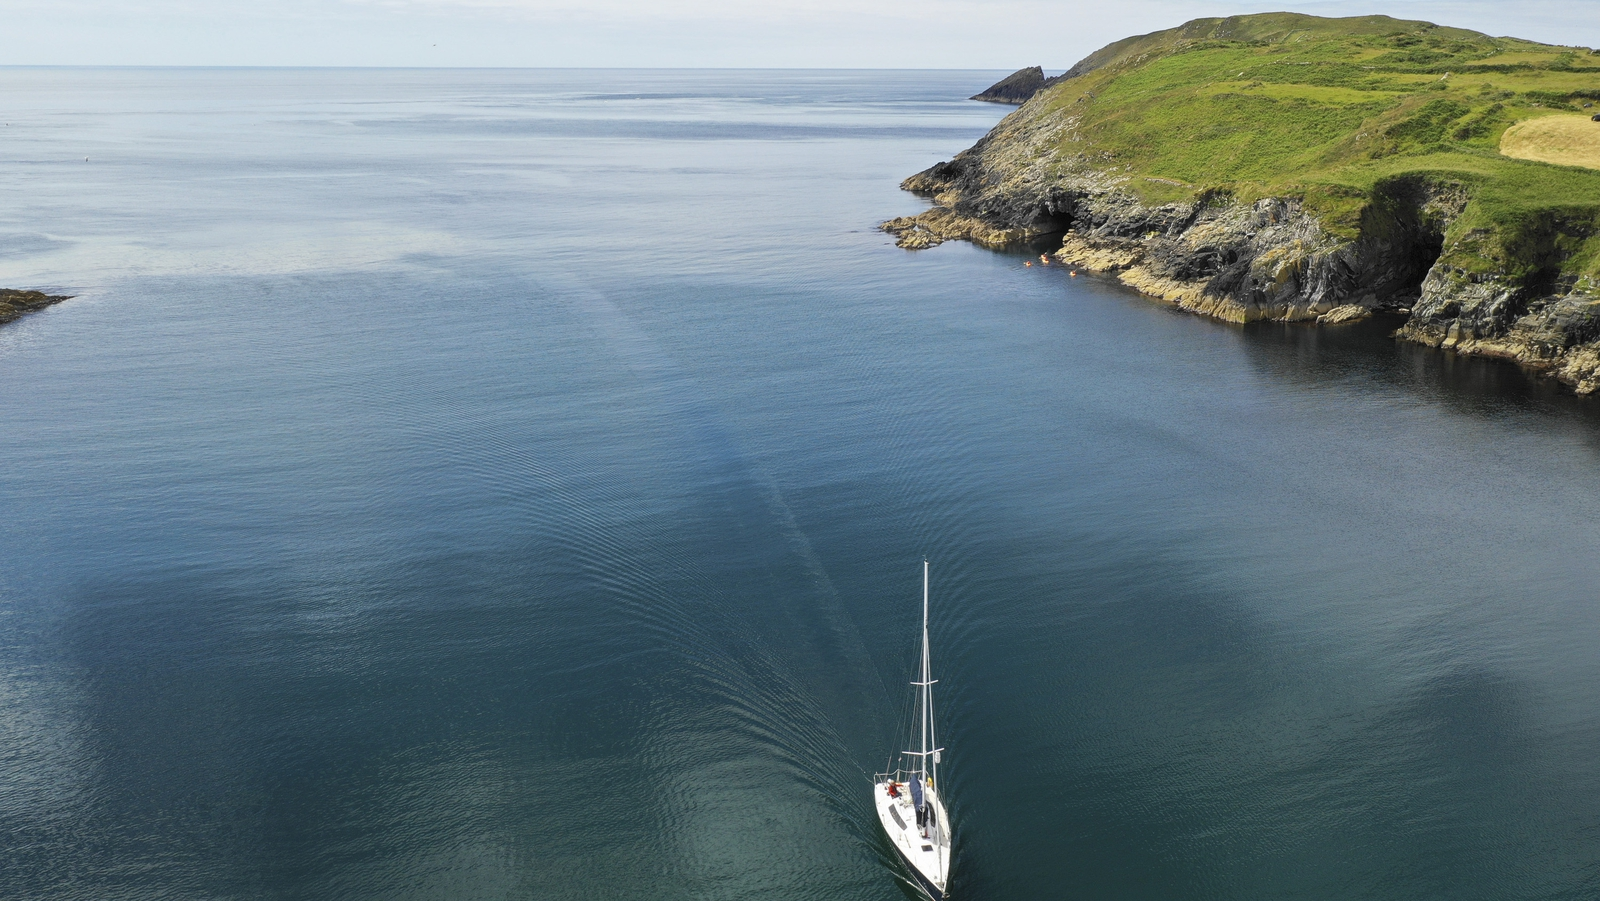 Image - Gliding into Cape Clear, Co Cork (Pic: Leon Giblin Photography)